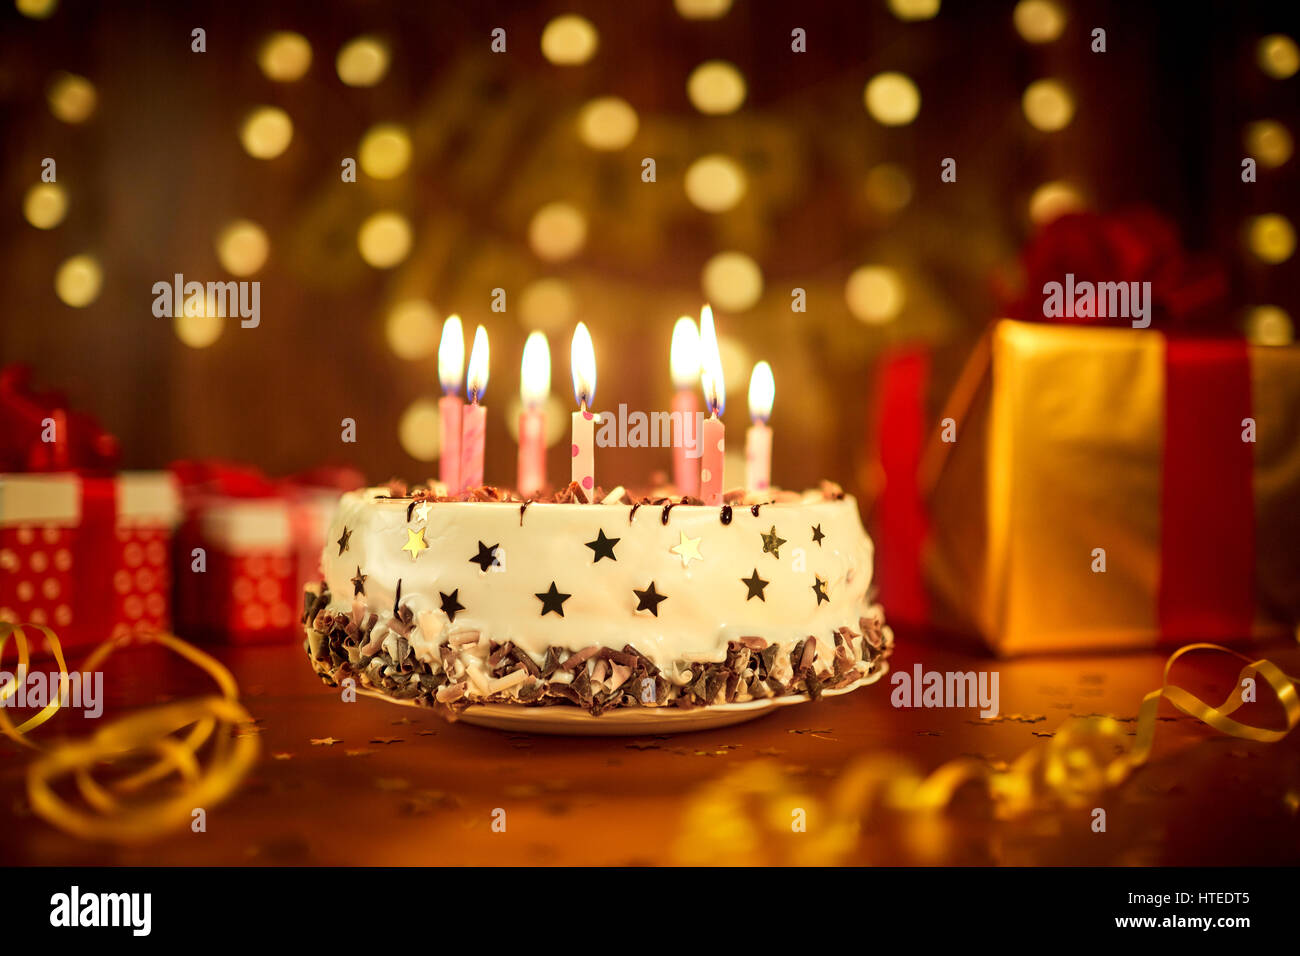 Happy Birthday Cake With Candles On The Background Of Garlands And